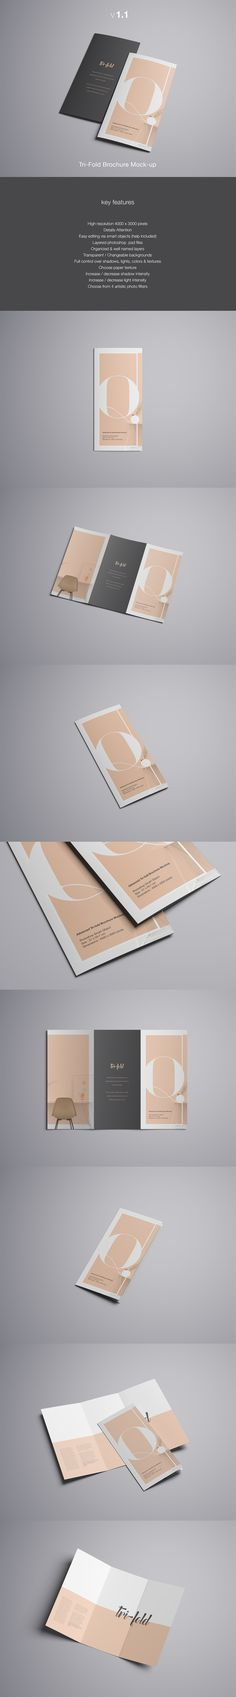 Advanced Tri-Fold Brochure Mockup - PSD on Behance                                                                                                                                                                                 More